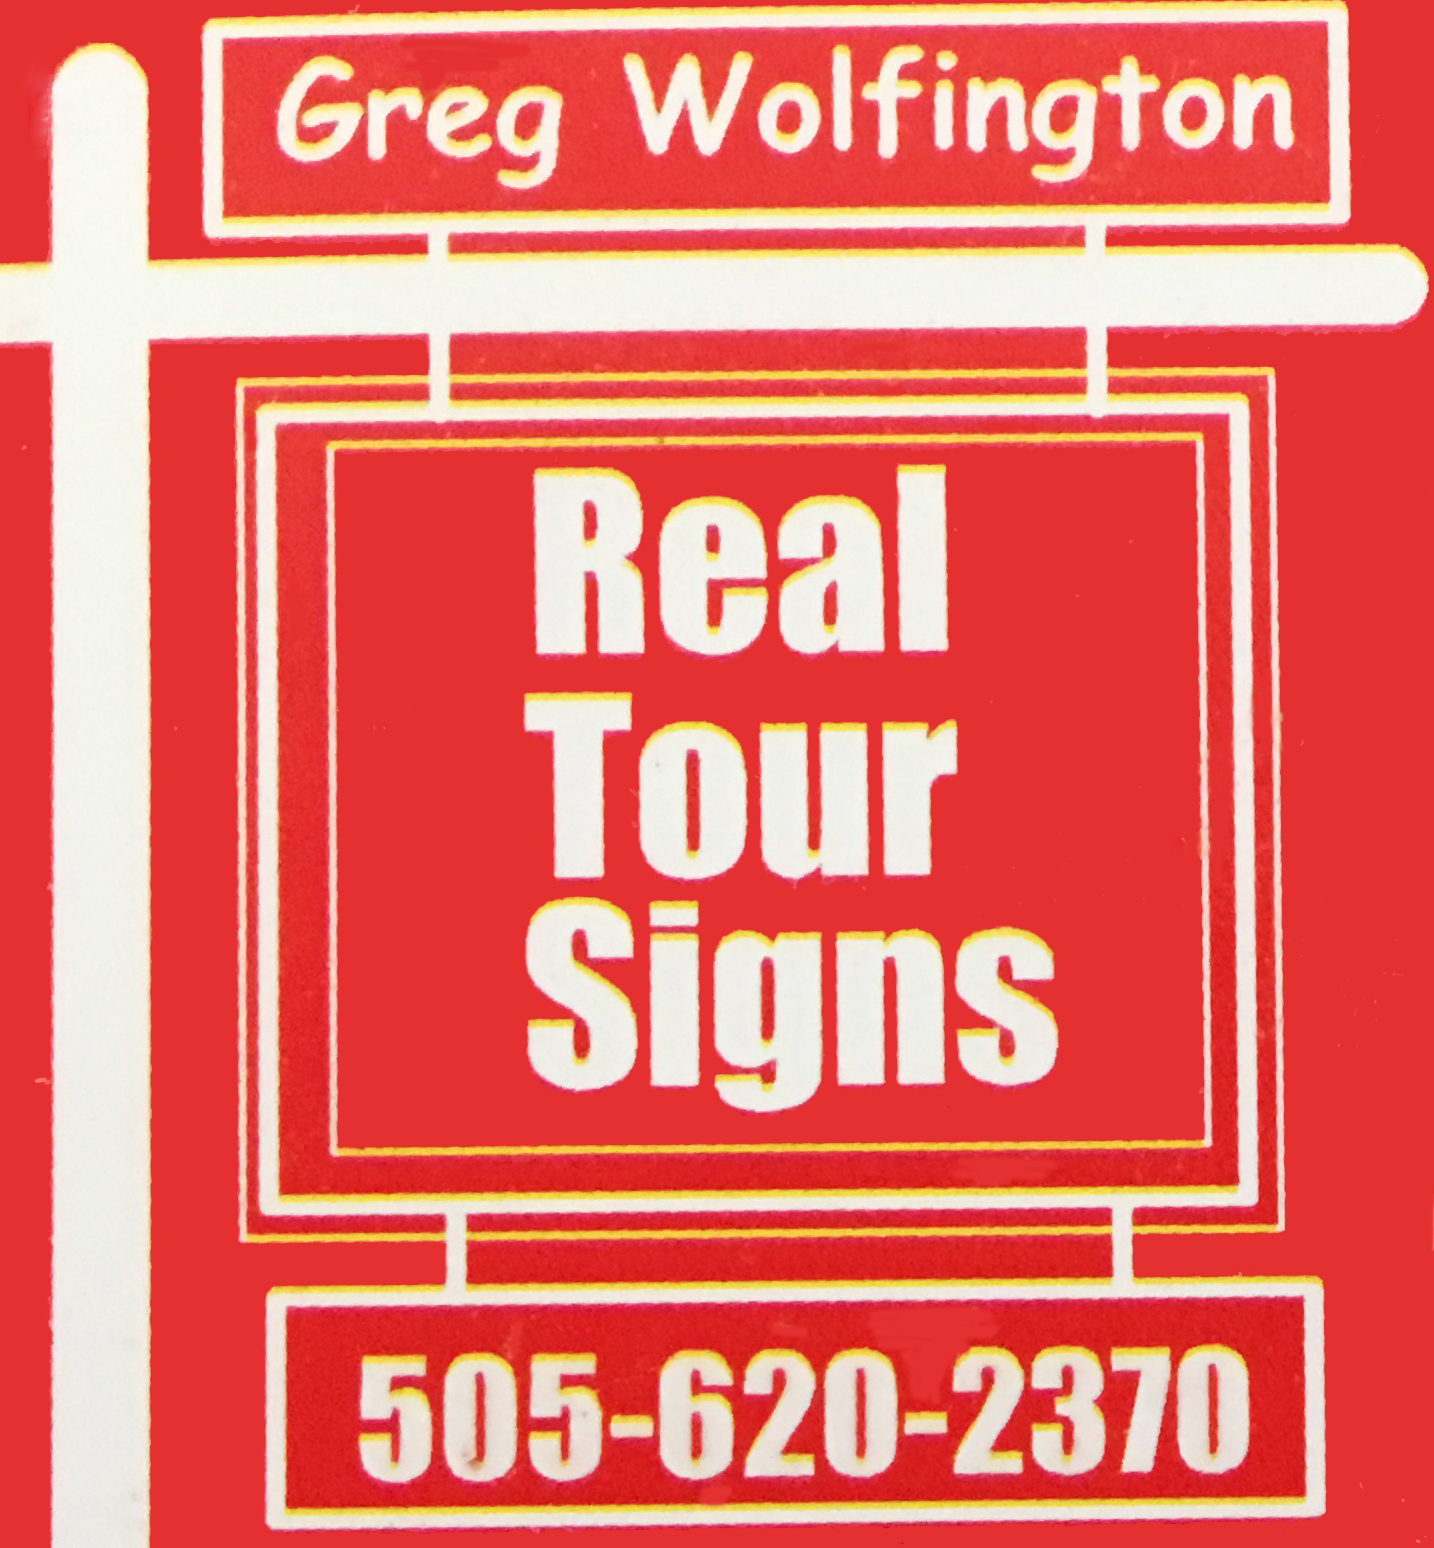 ABQ Real Tours Signs logo